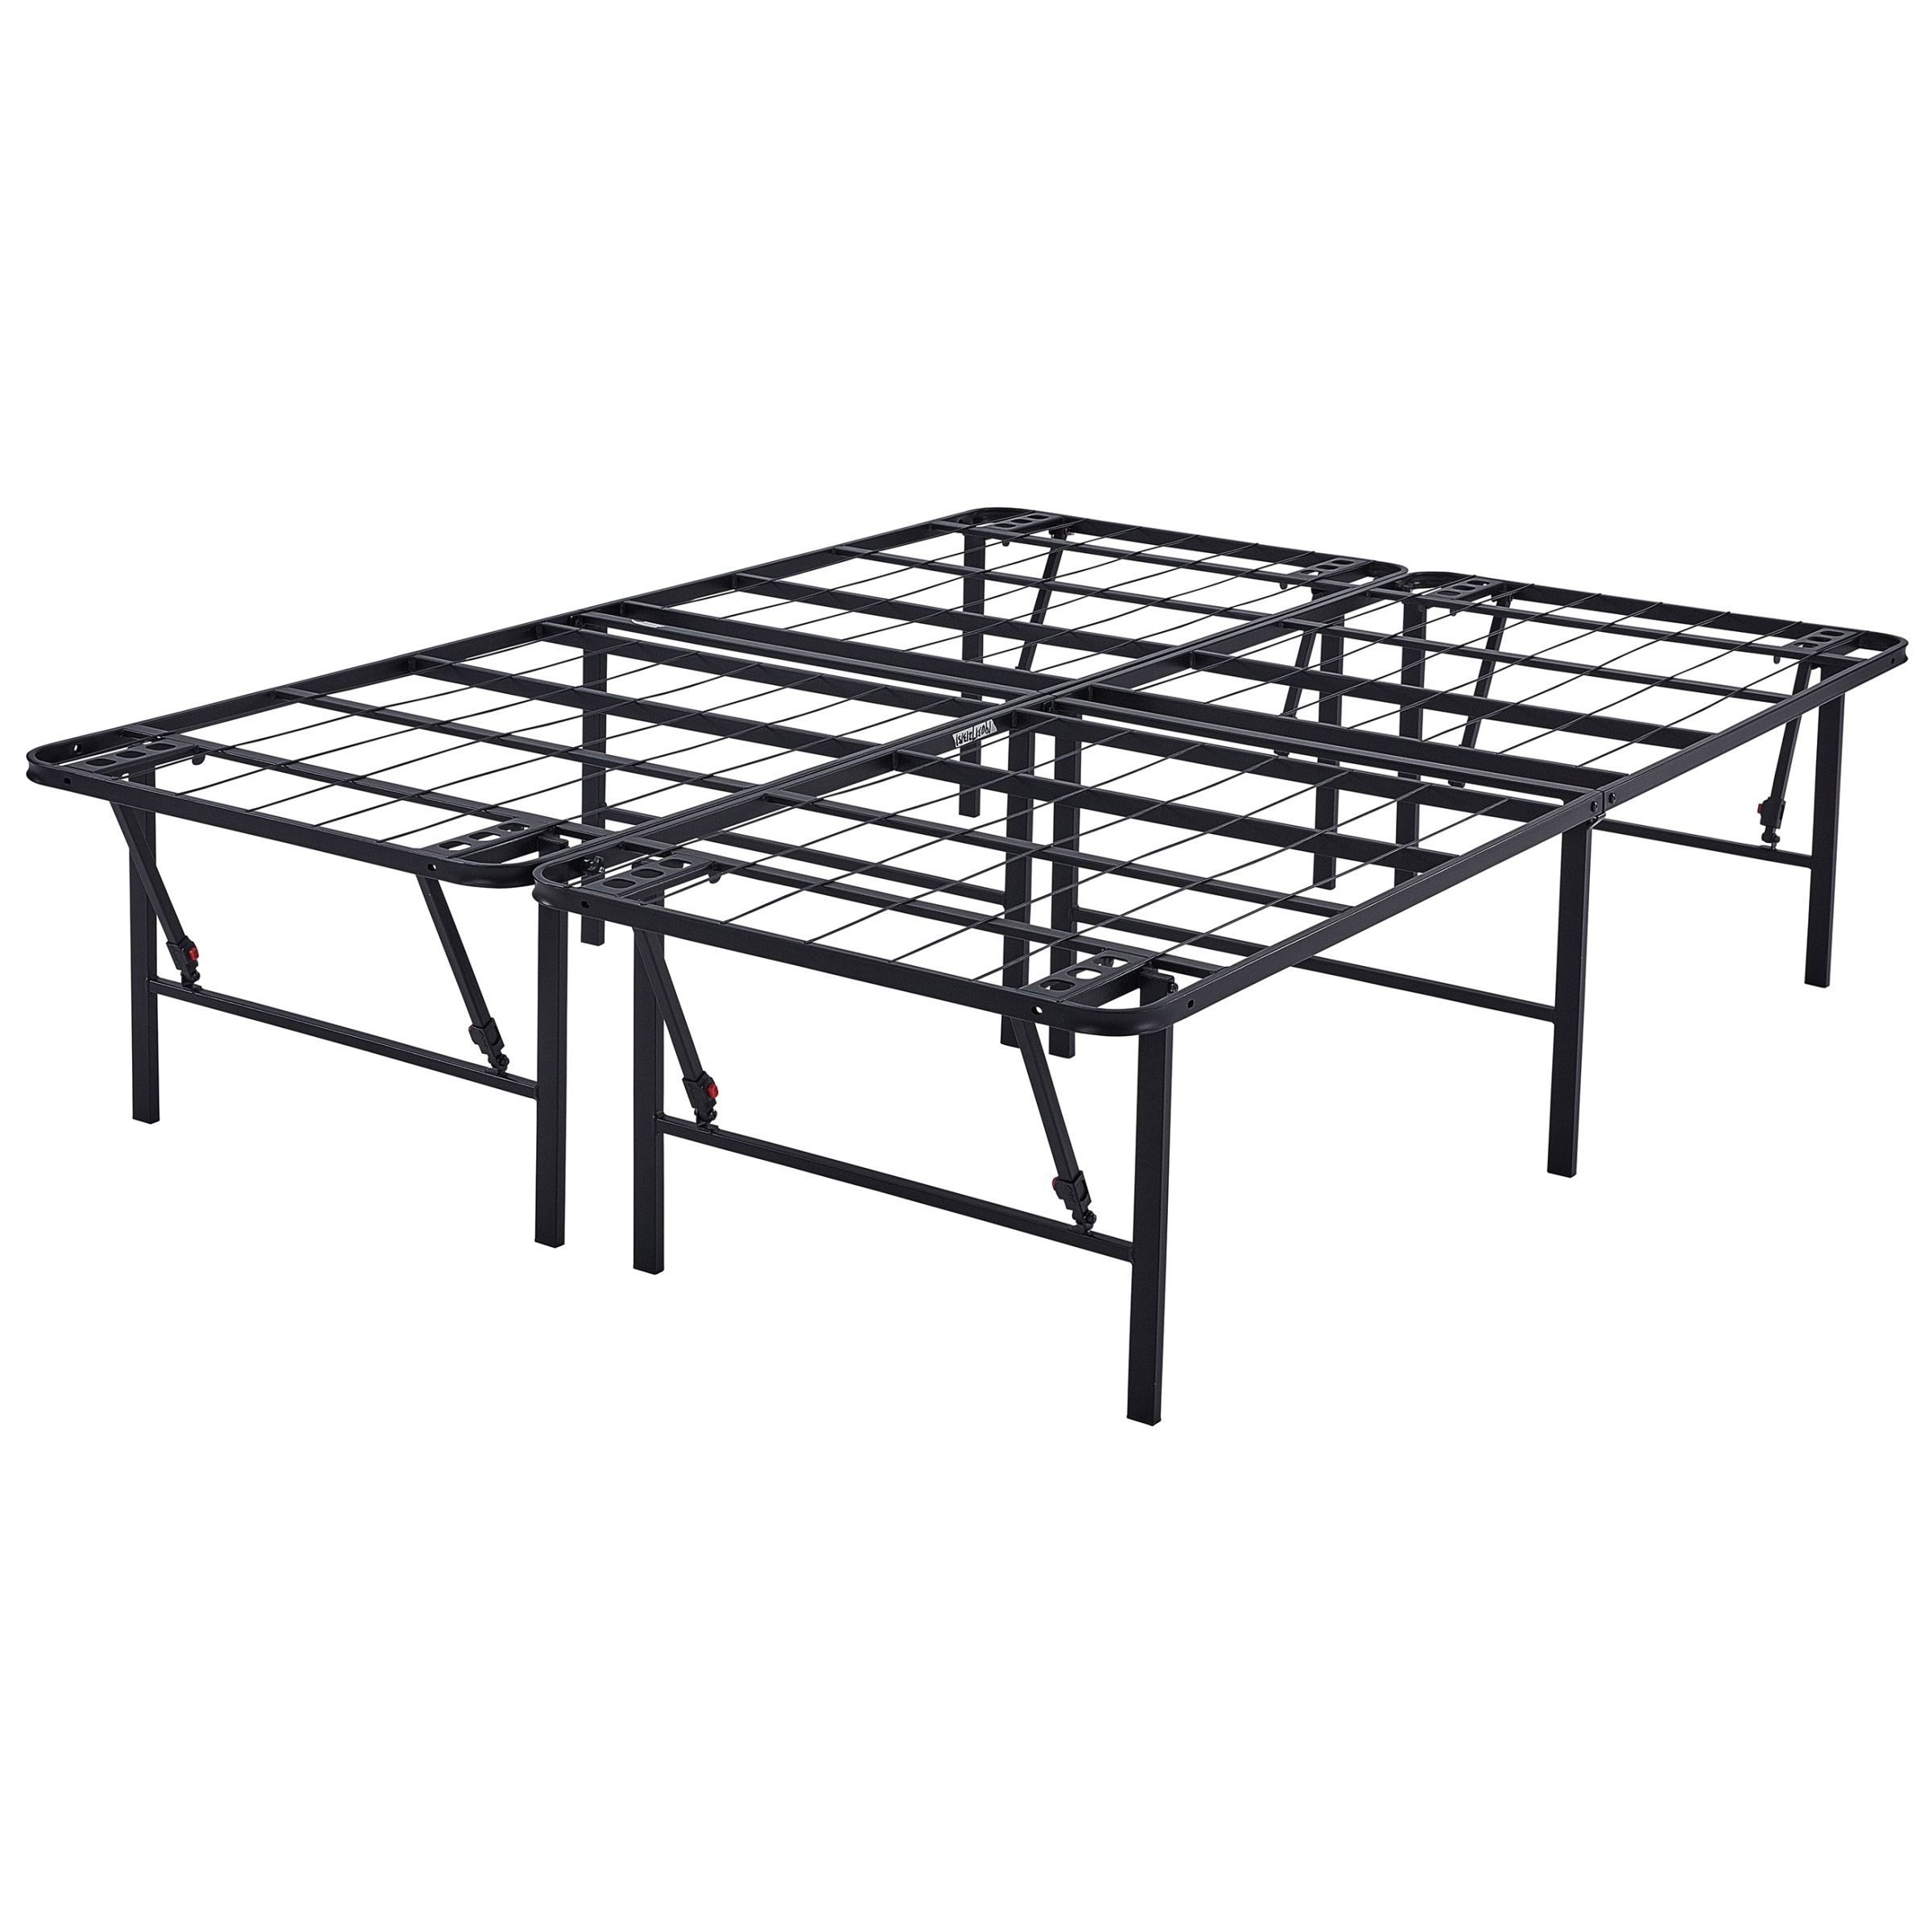 Home In 2020 Steel Bed Frame Steel Bed